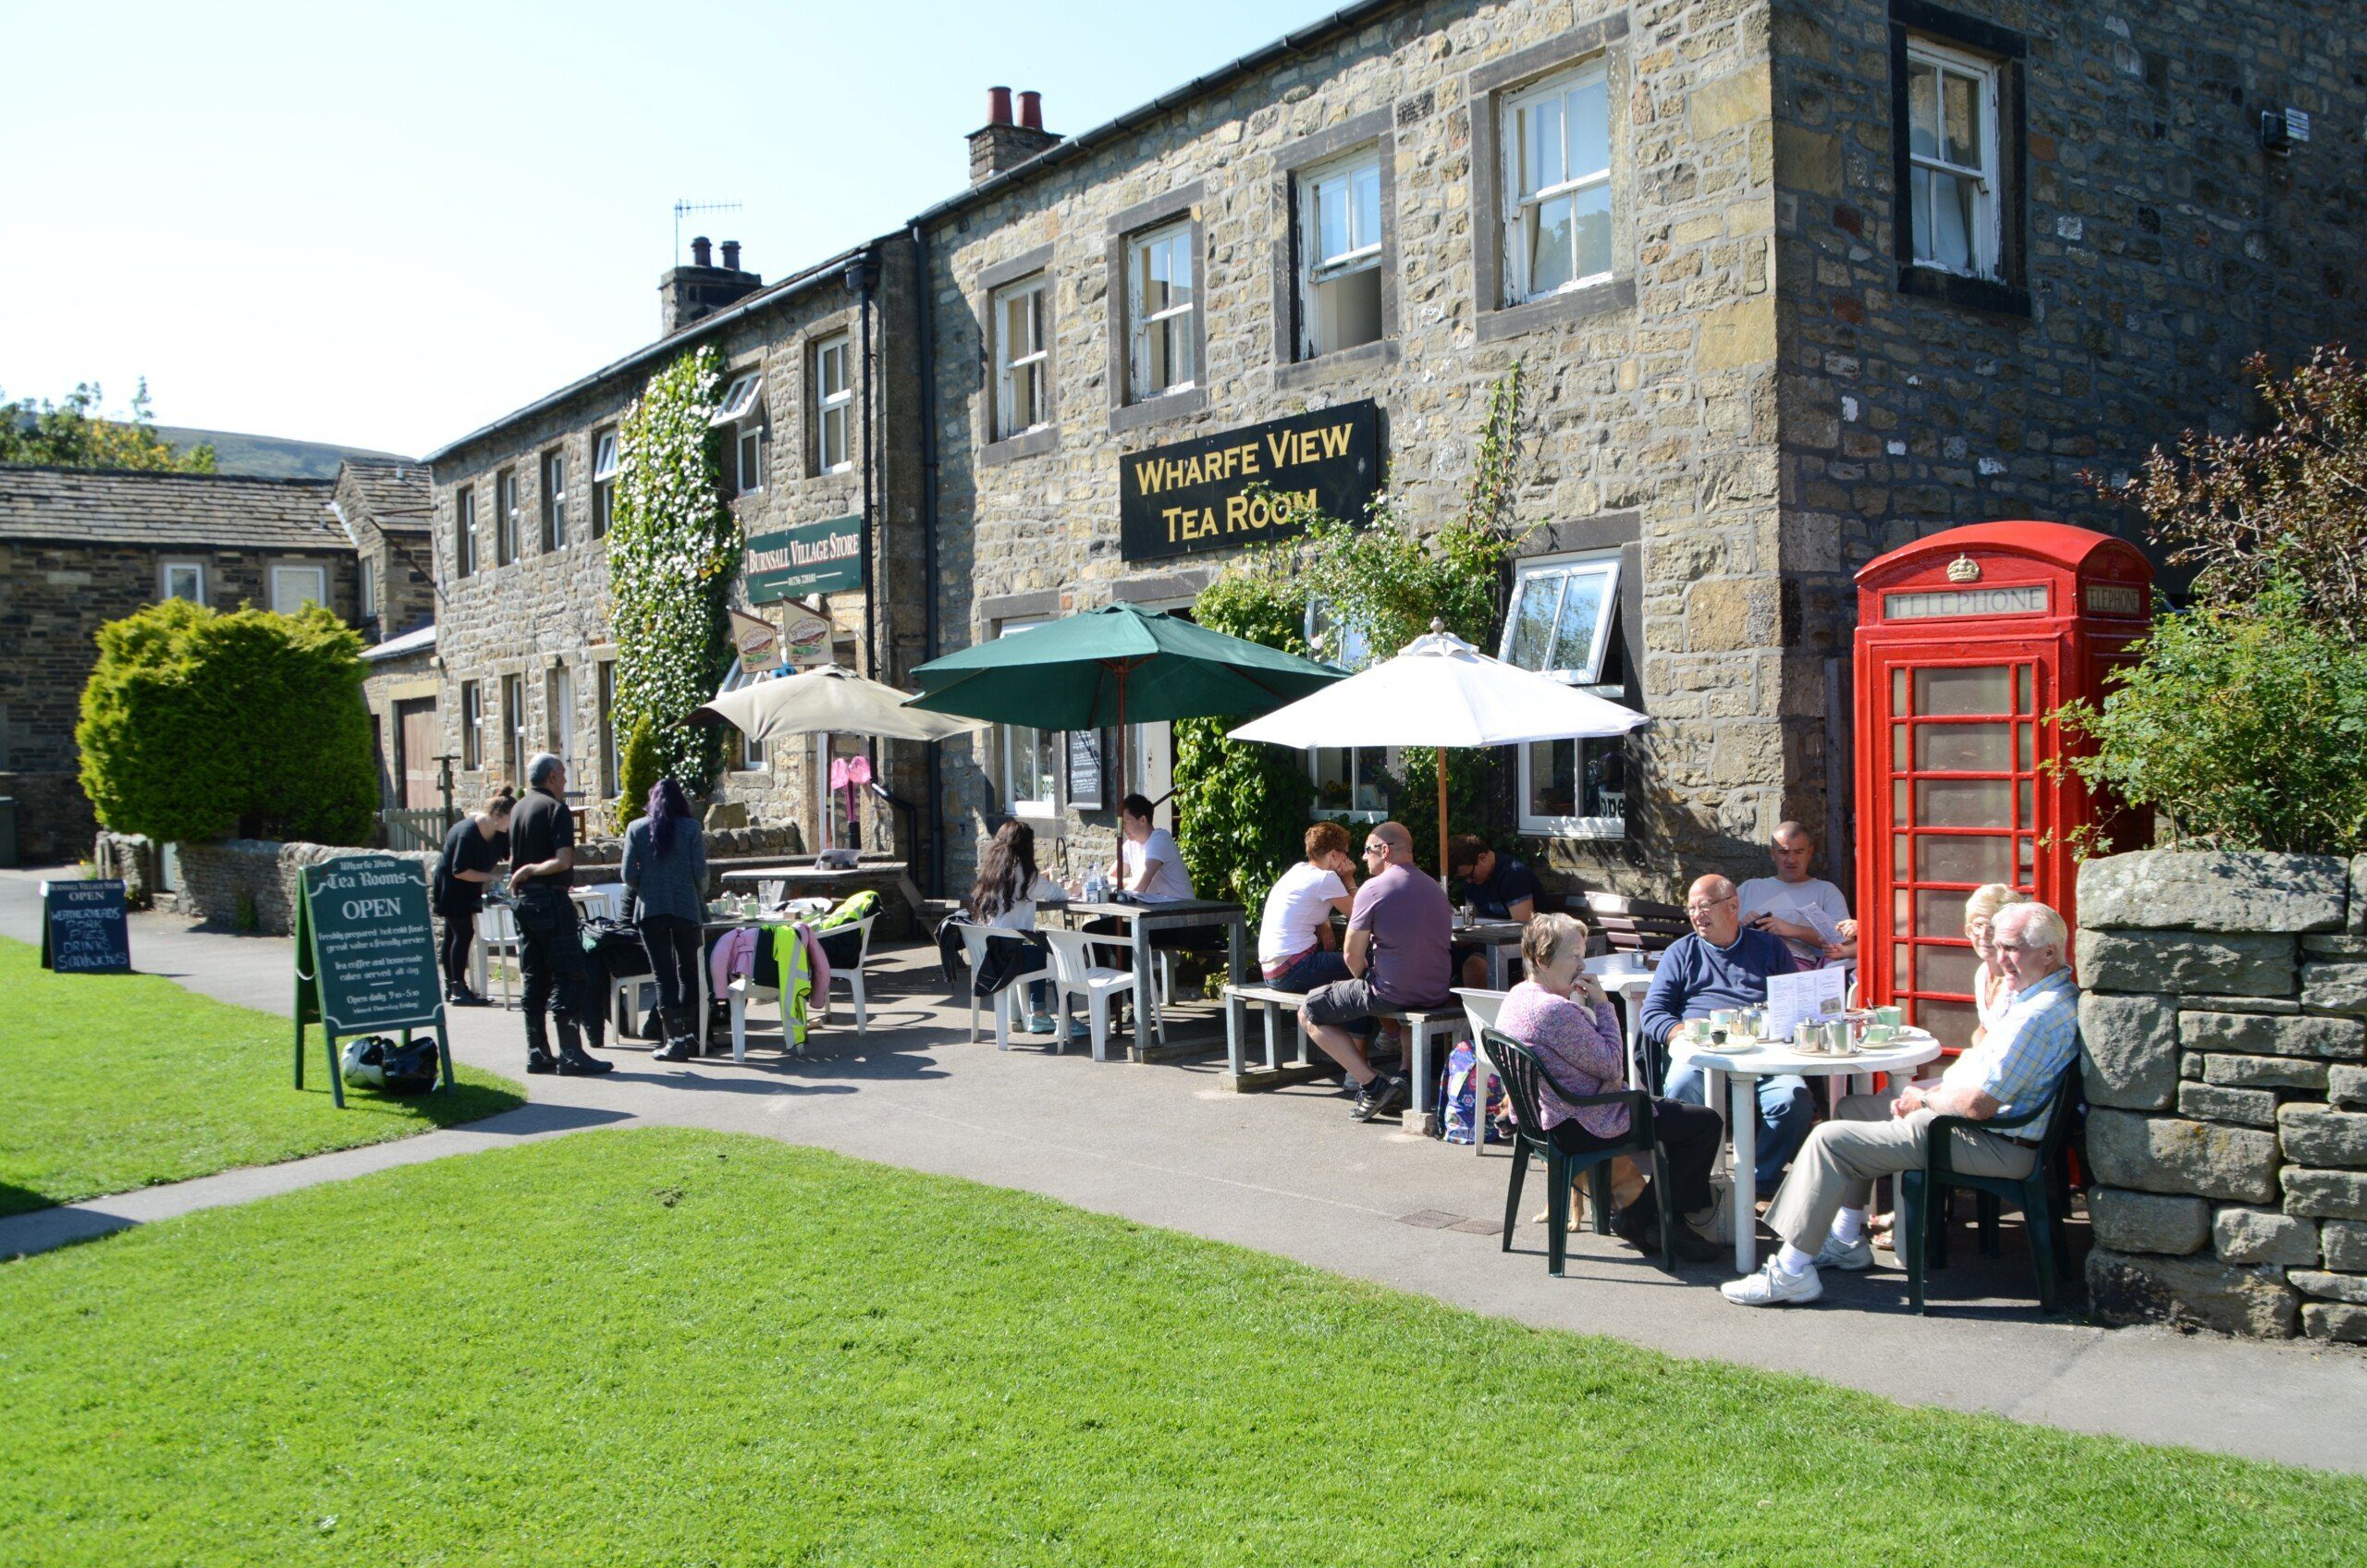 Busy tea rooms at Burnsall in Wharfedale, right on the Dales Way